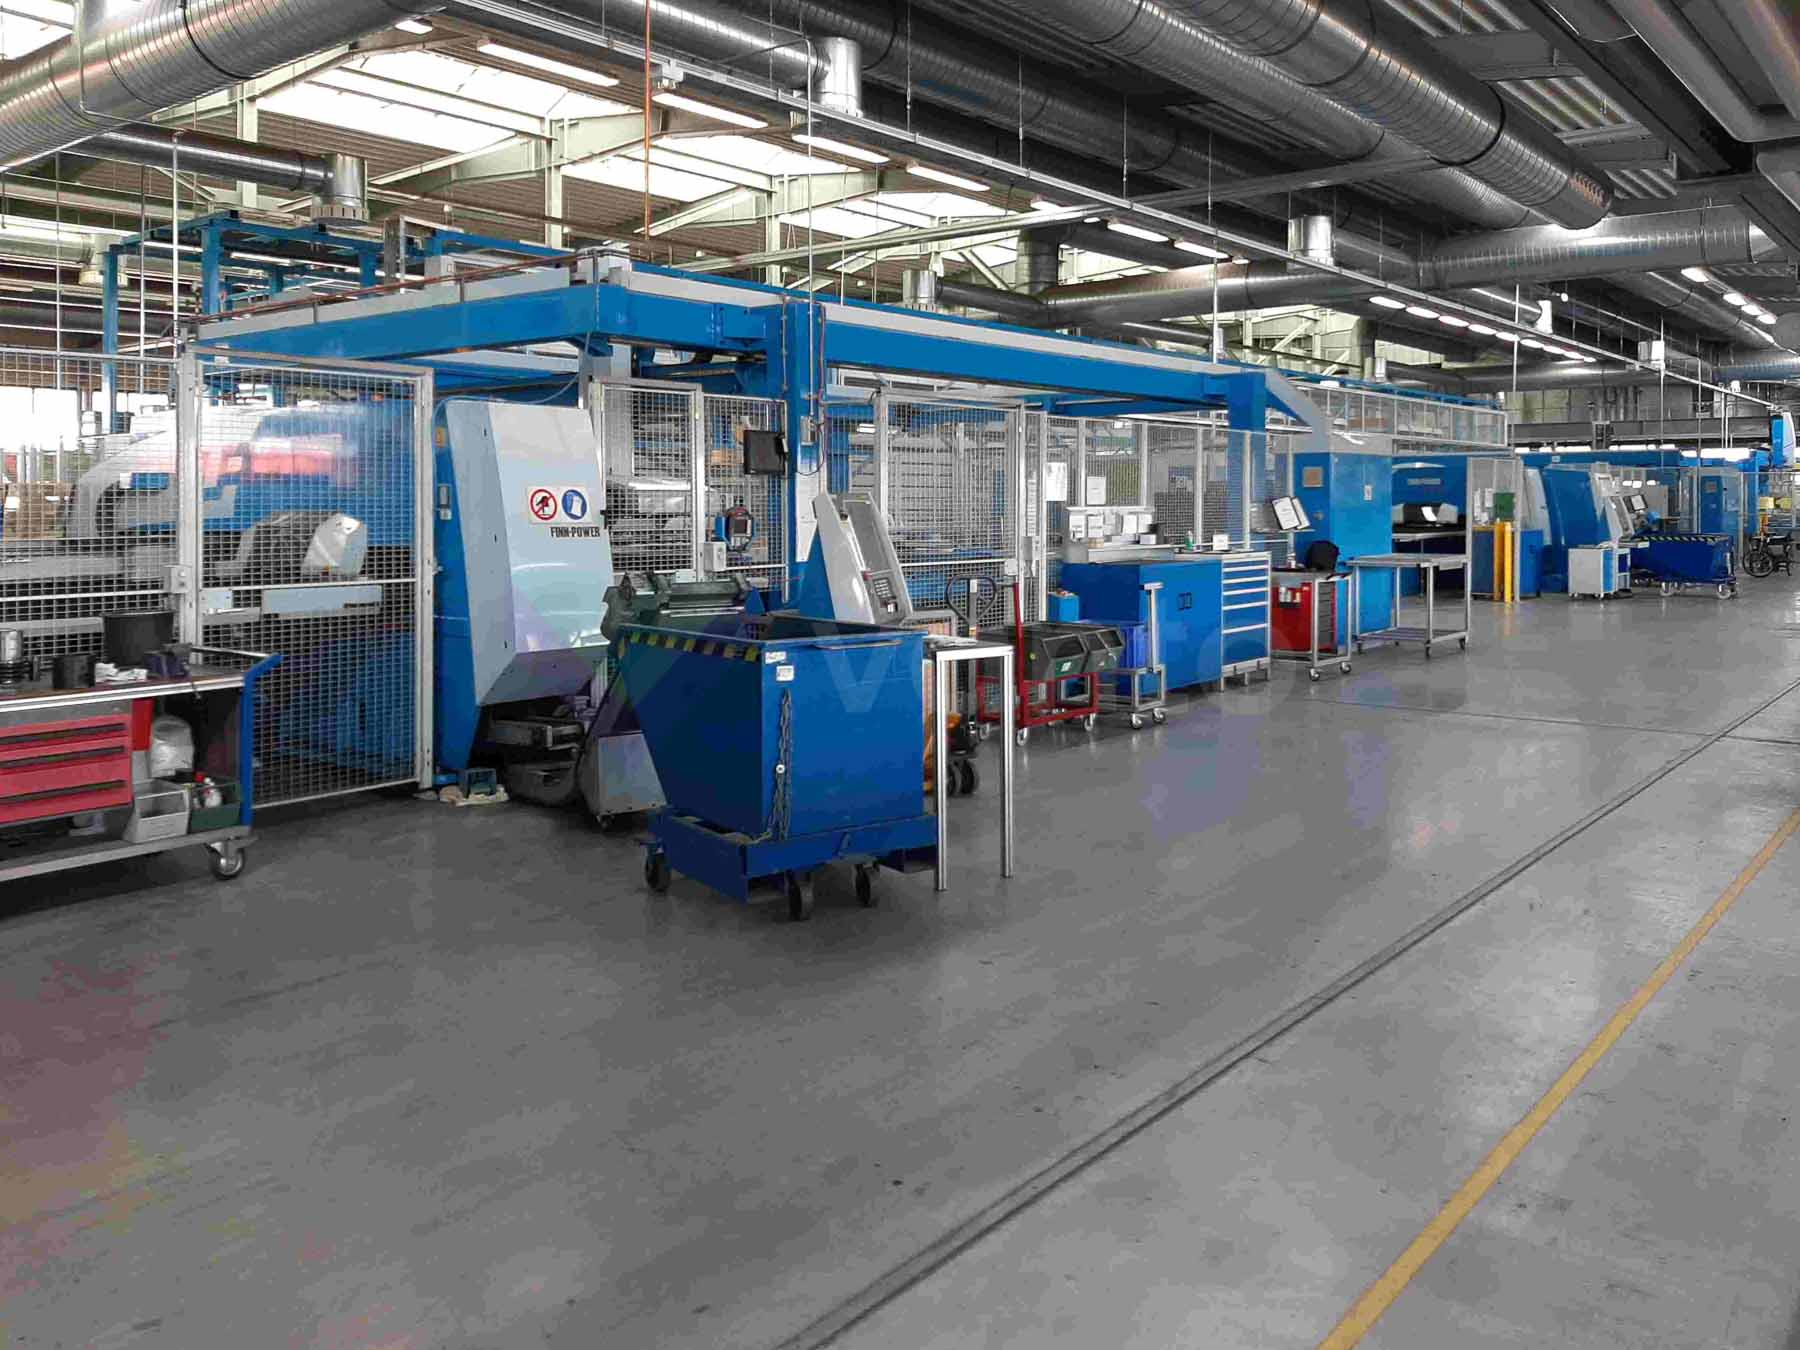 FINN POWER SG EB LP Express Bender Punching shearing and sheet metal folding line (2009) id10566